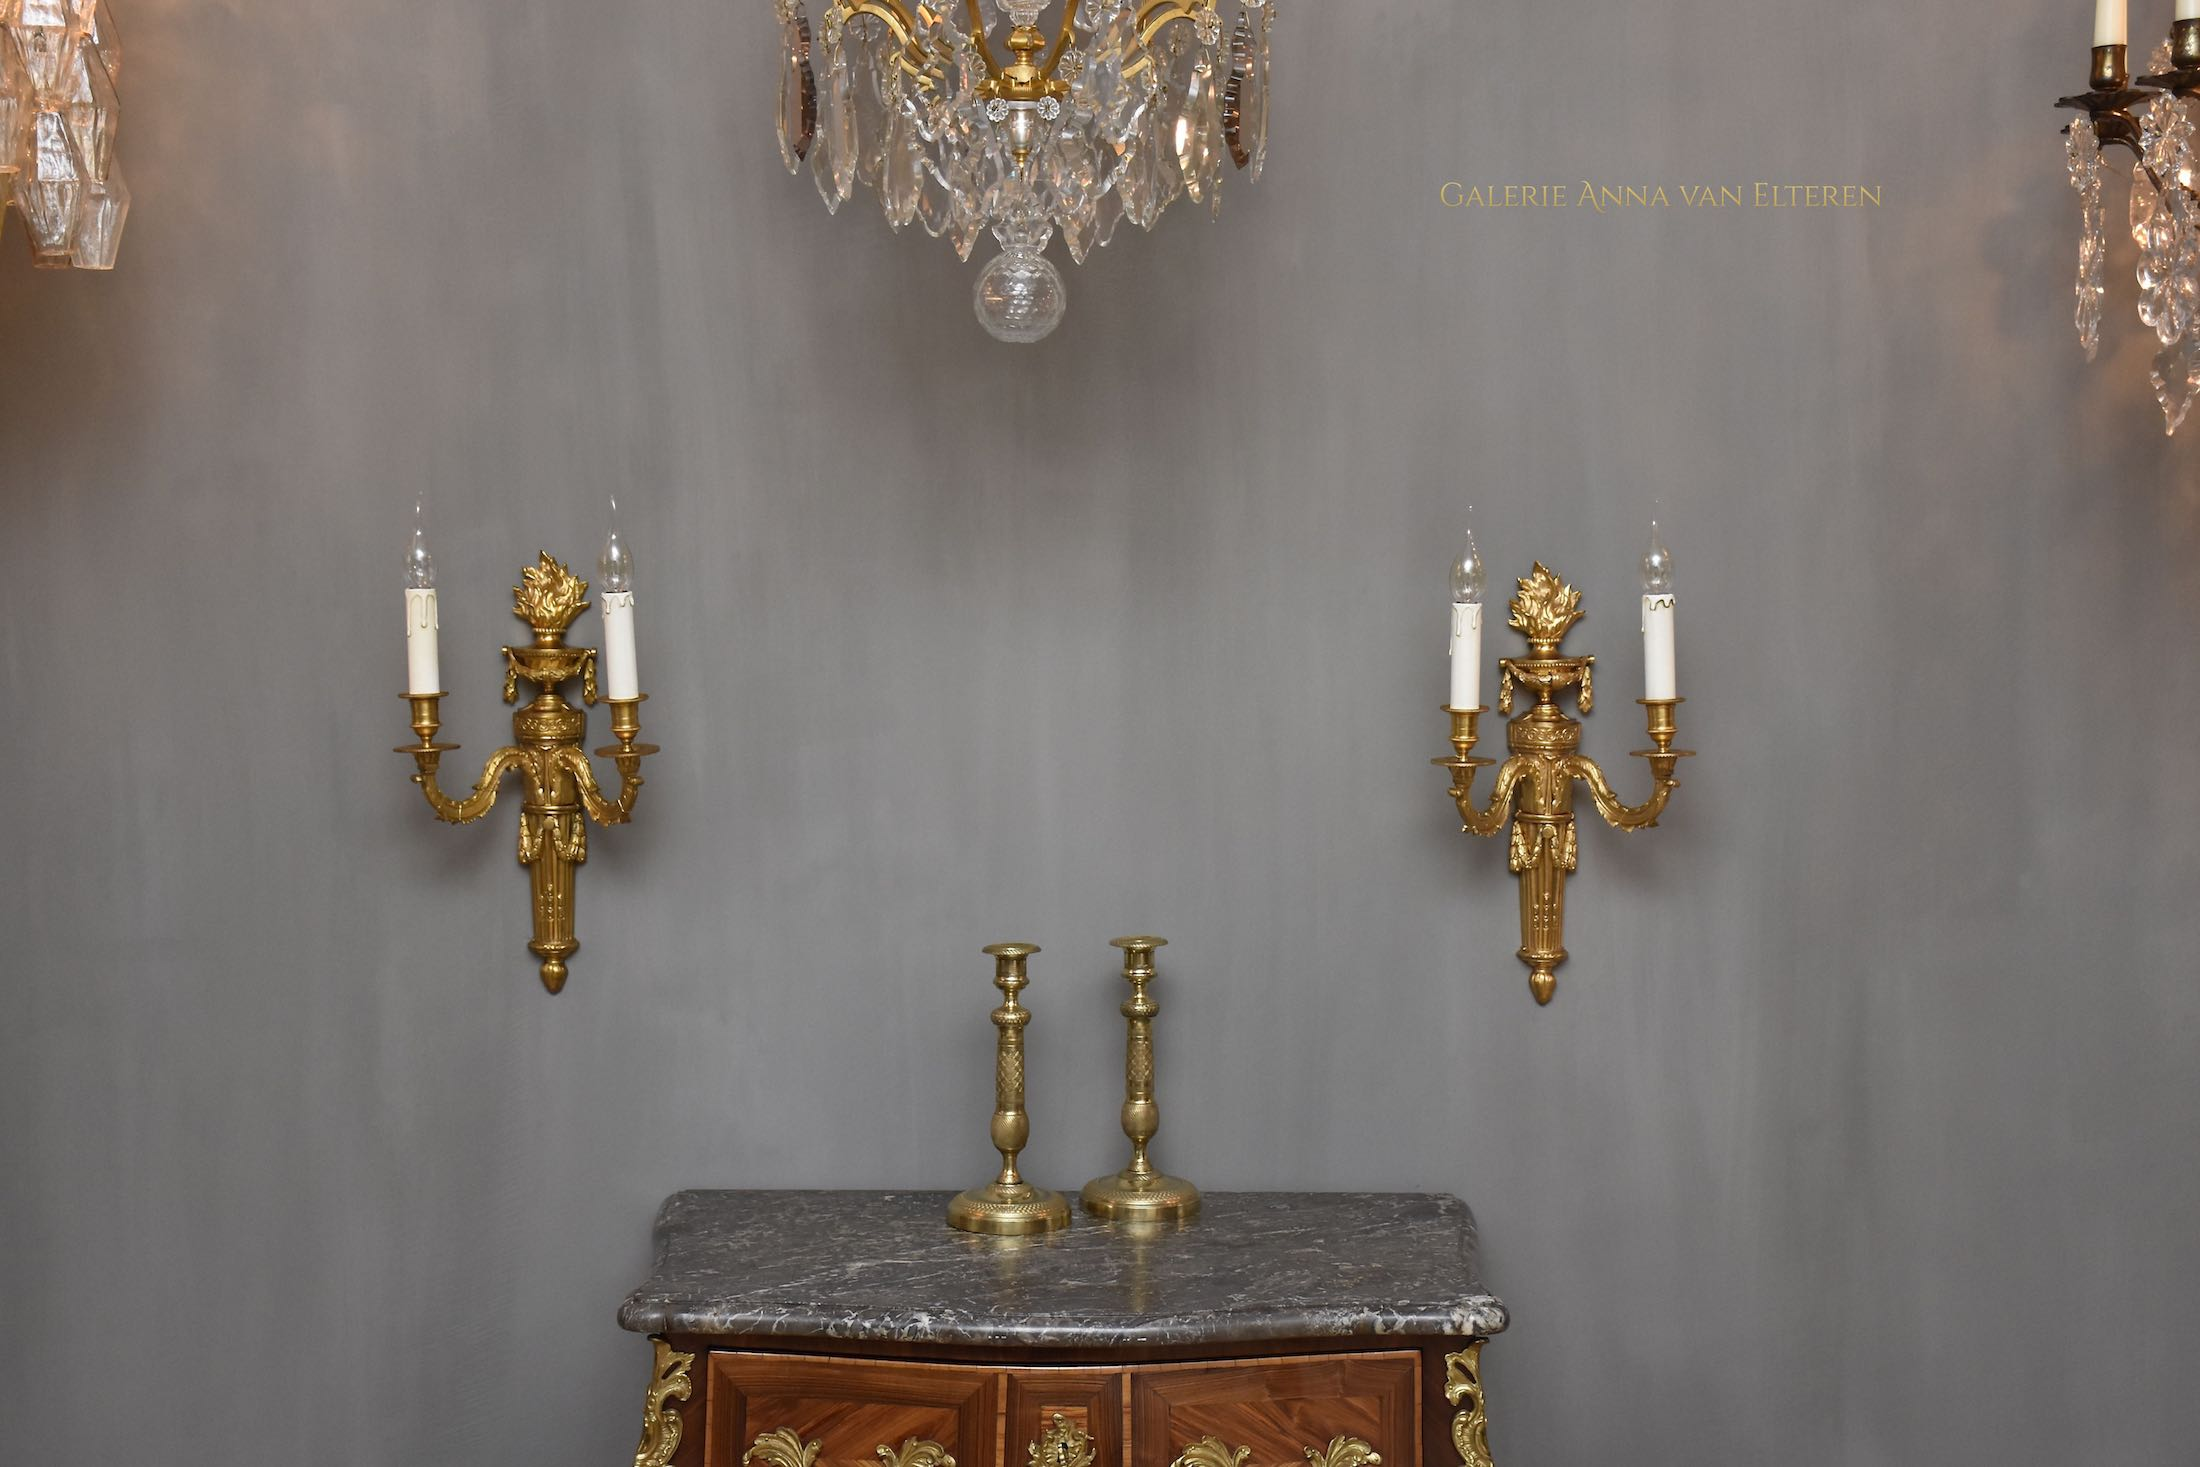 A pair of large gilt bronze French wall appliques in the style of Louis XVI